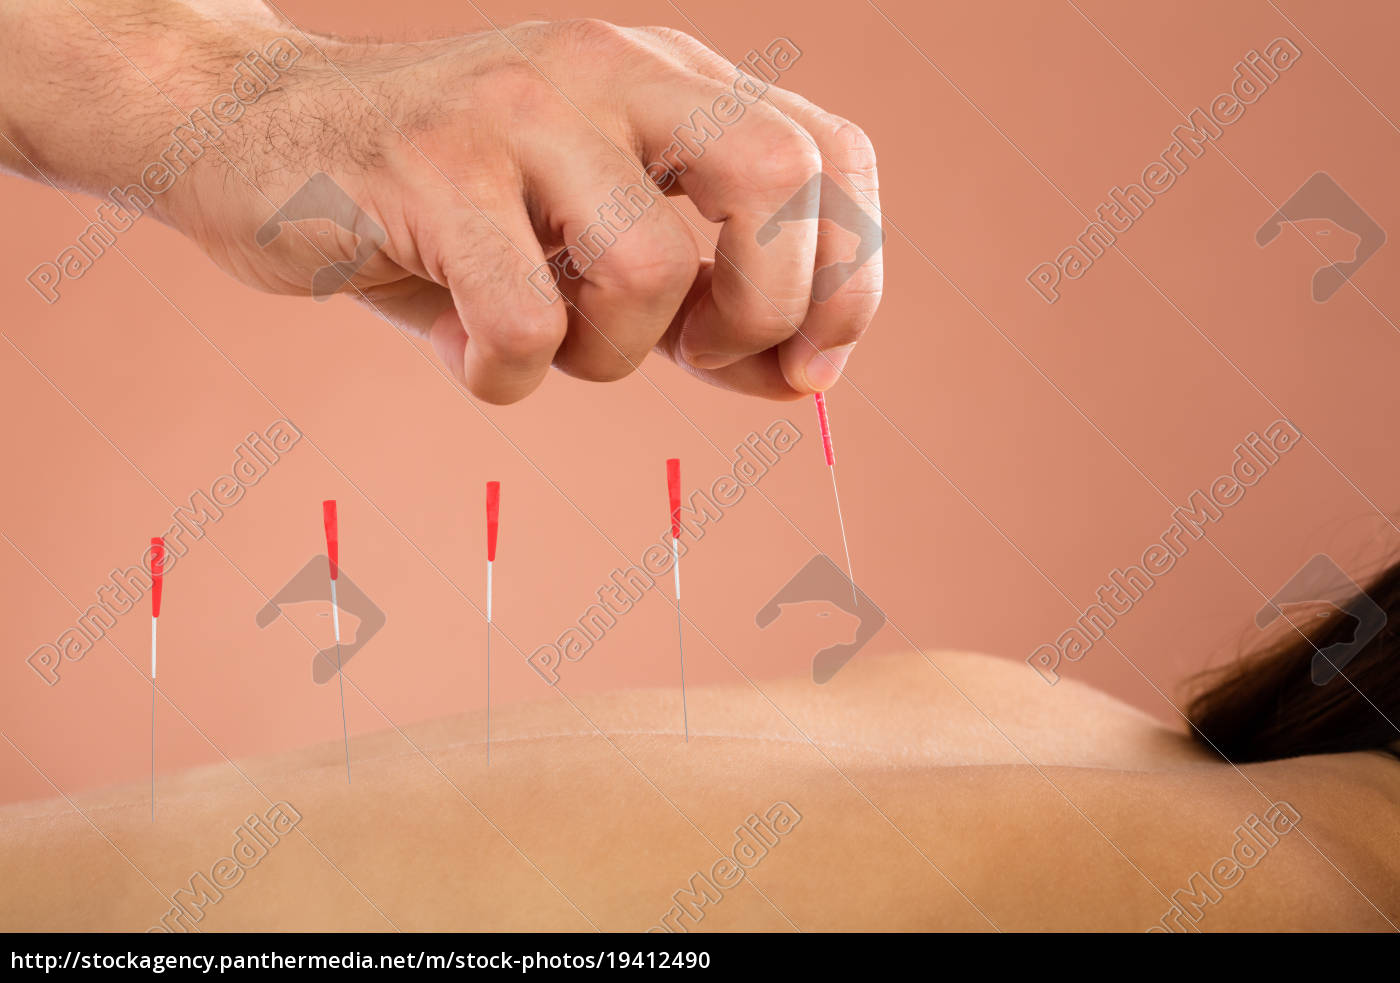 woman, getting, acupuncture, treatment - 19412490